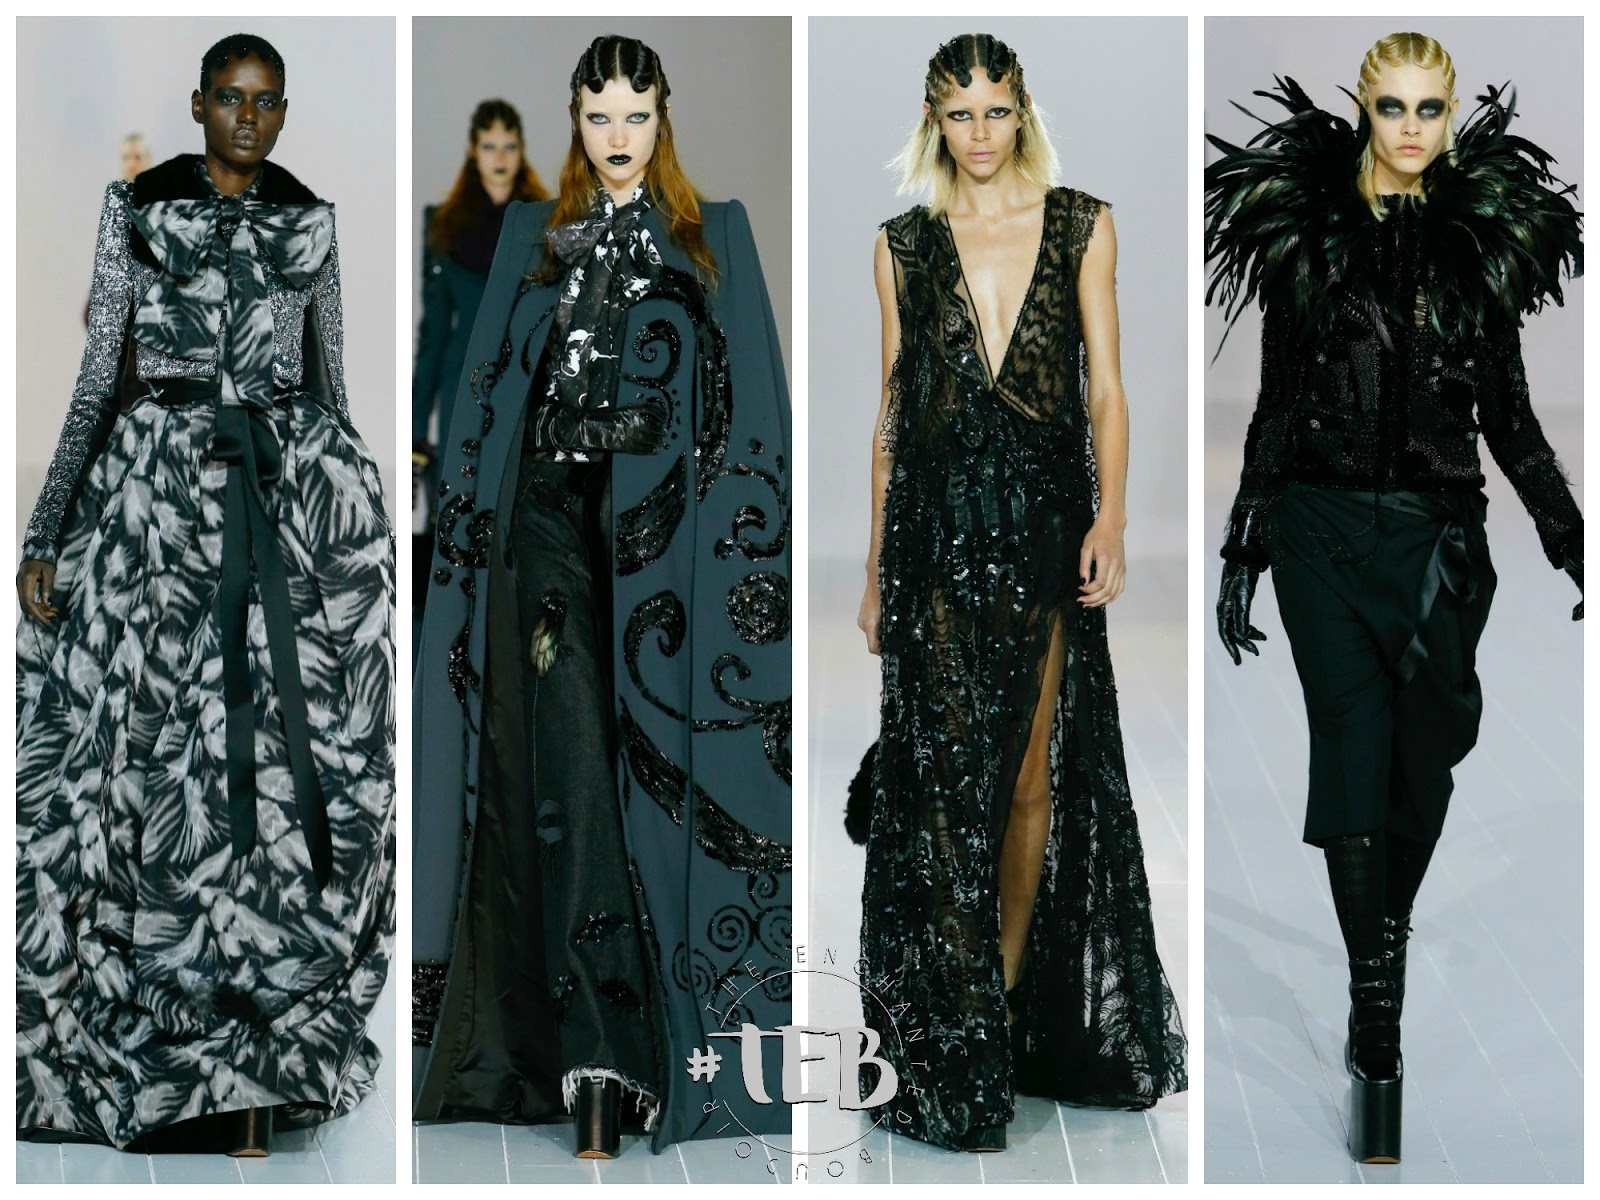 marc jacobs goth collection